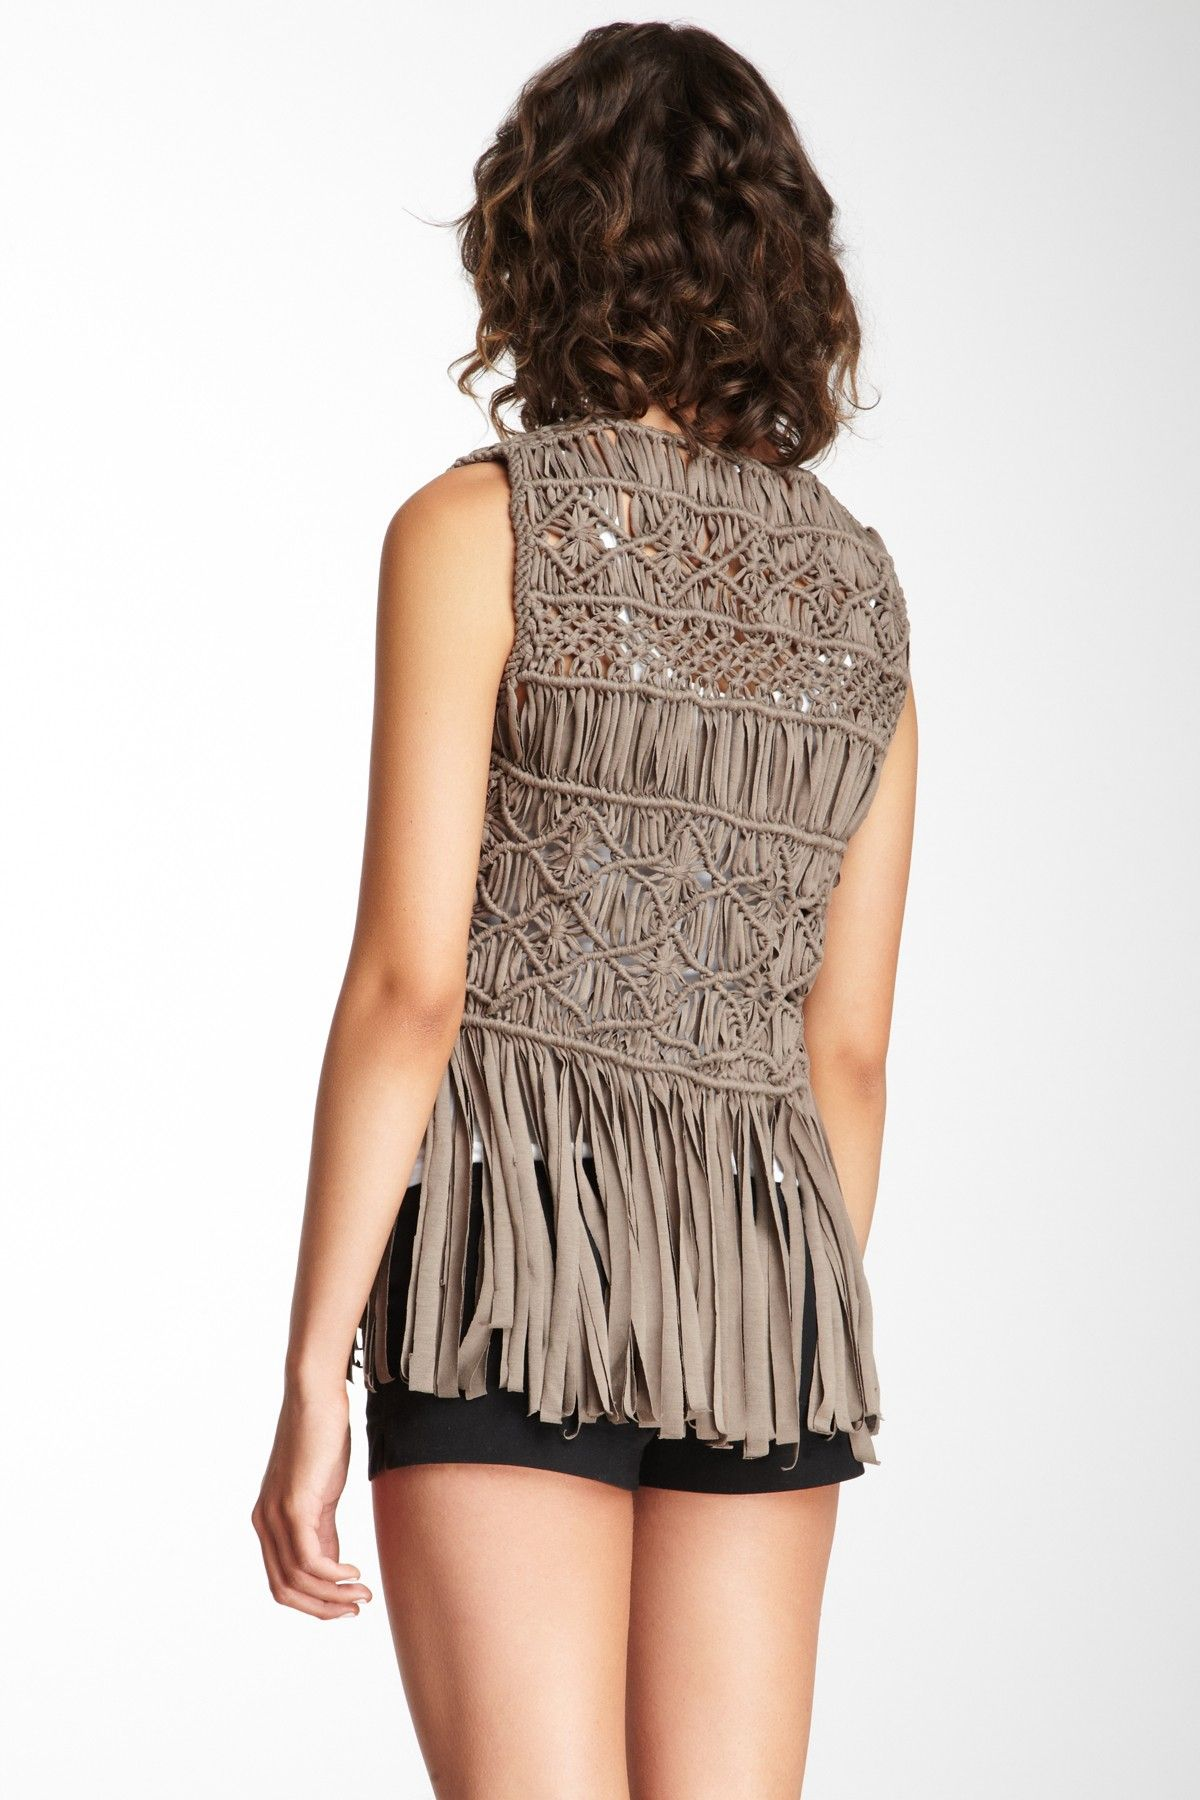 macrame vests subtle luxury macrame vest back diy stuff macrame 8073